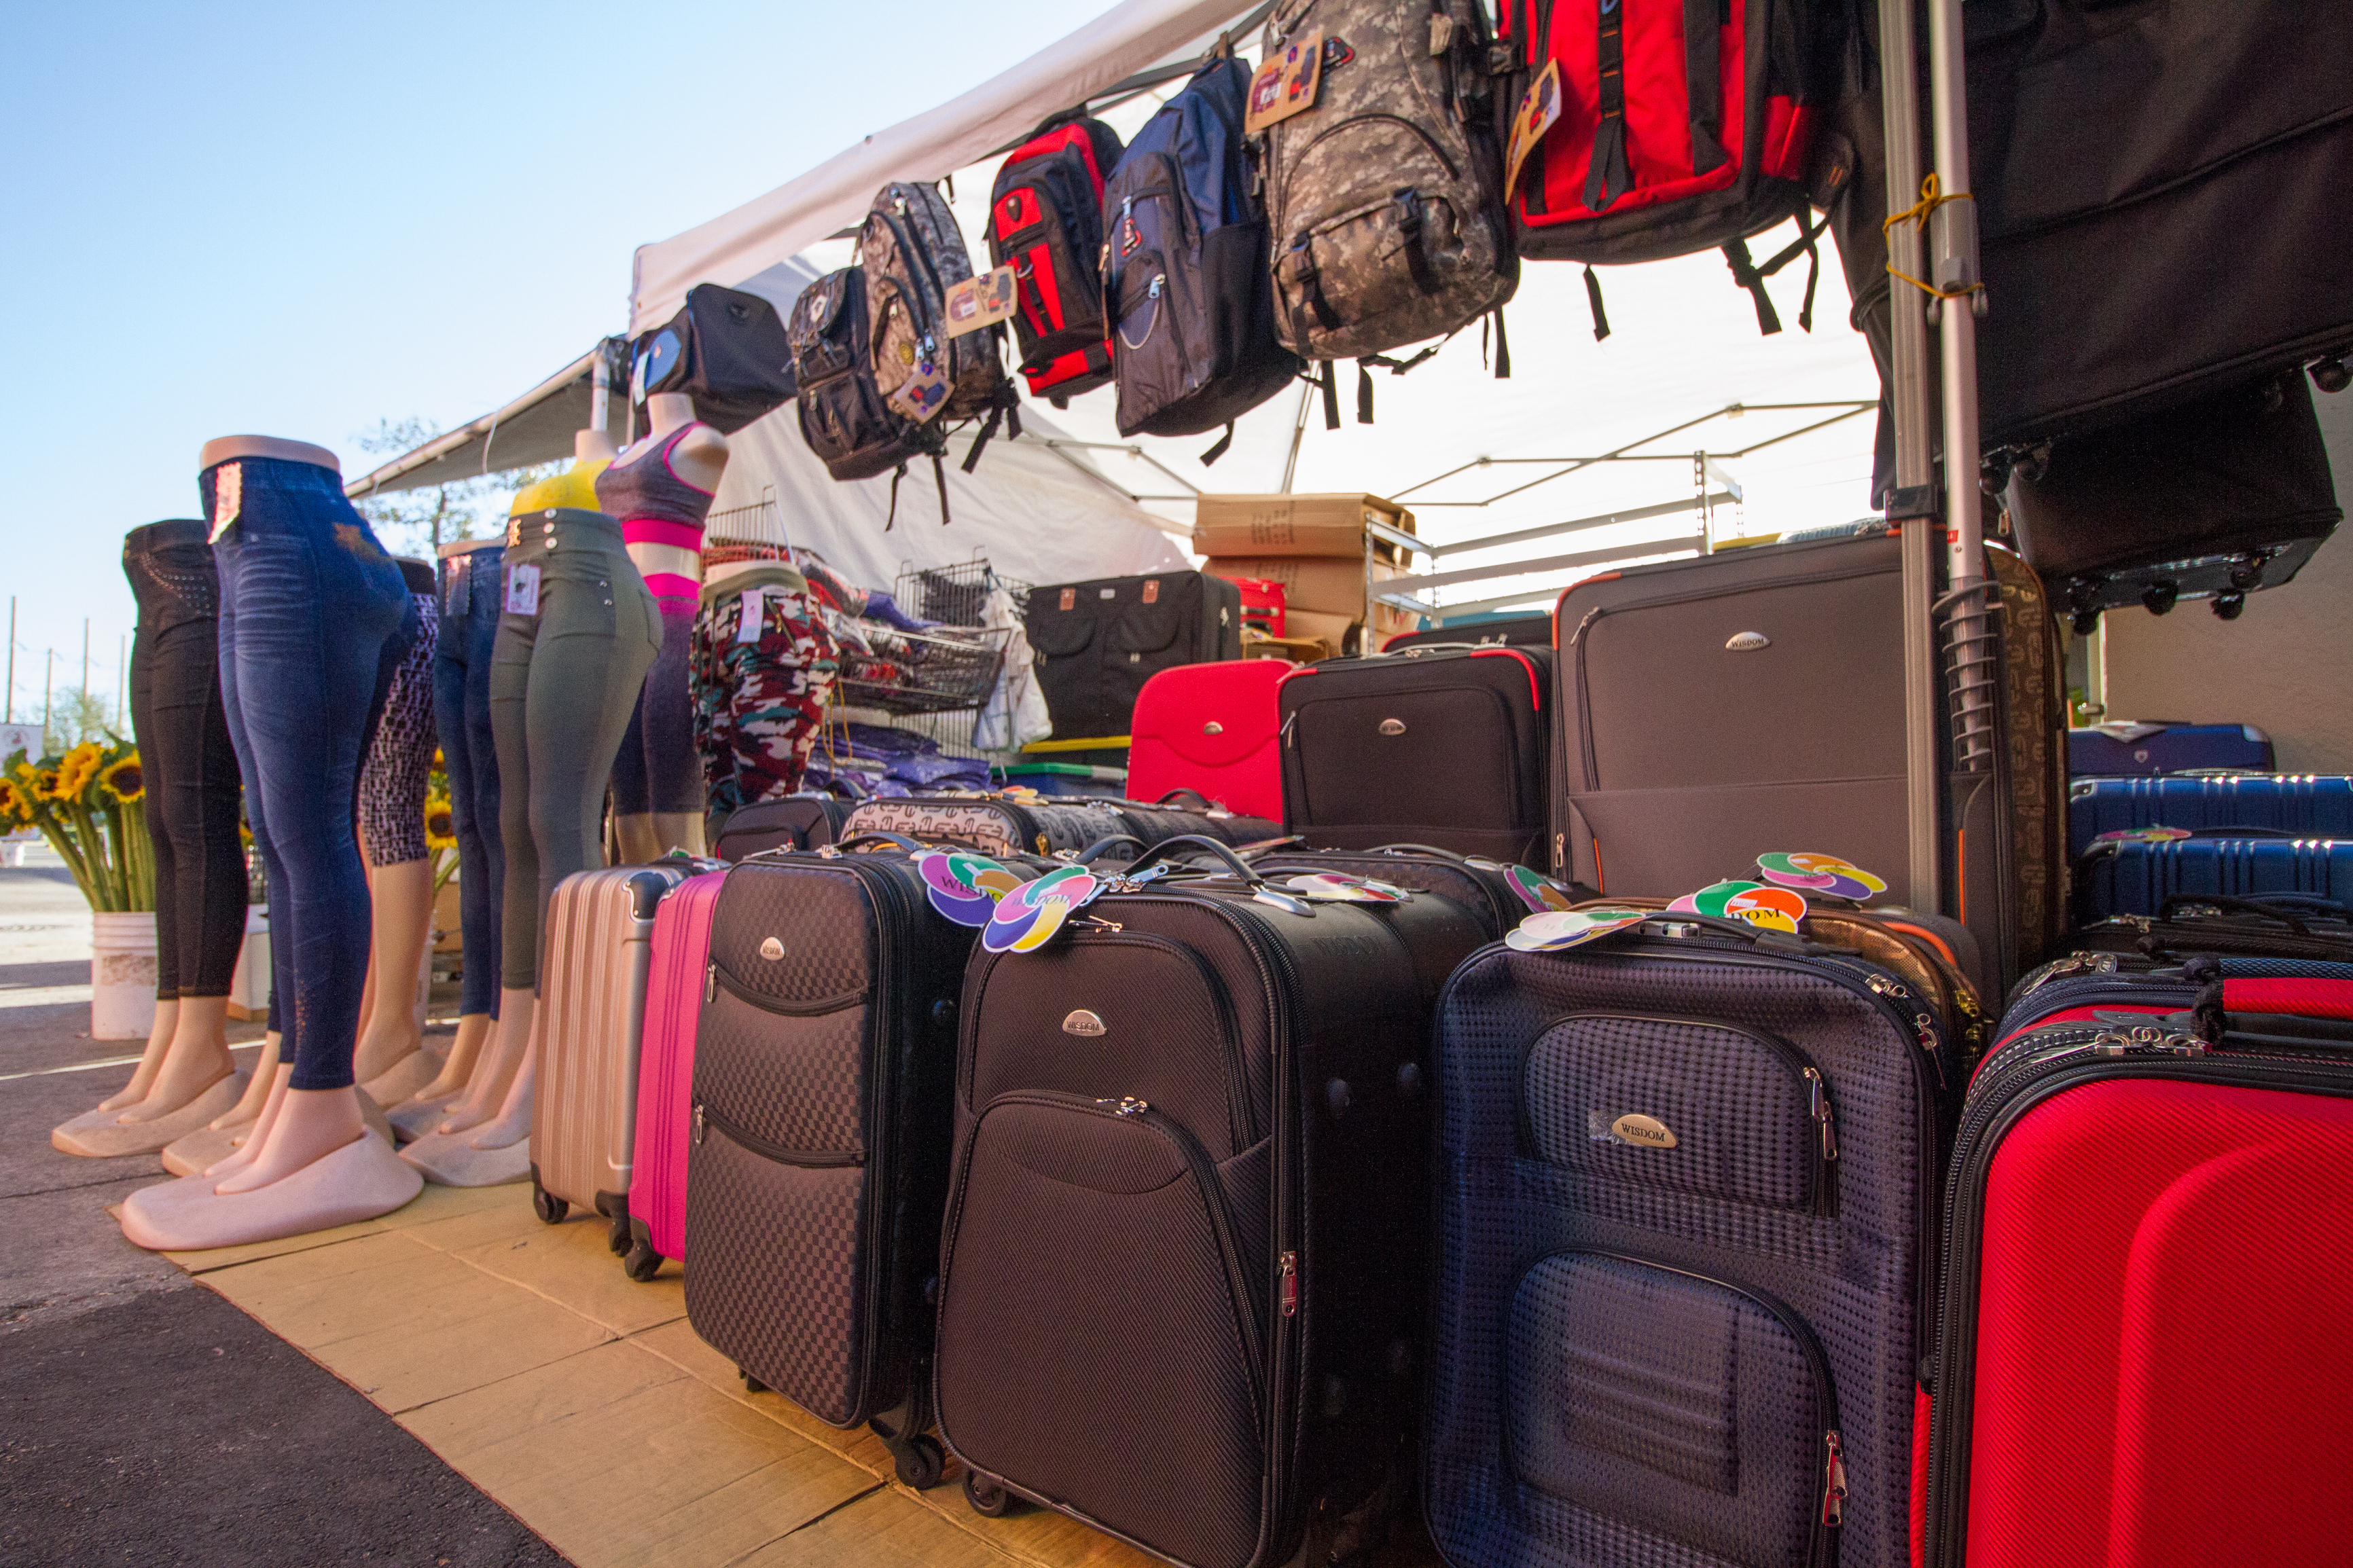 redland-market-vilalge-trip-tips-what-to-pack